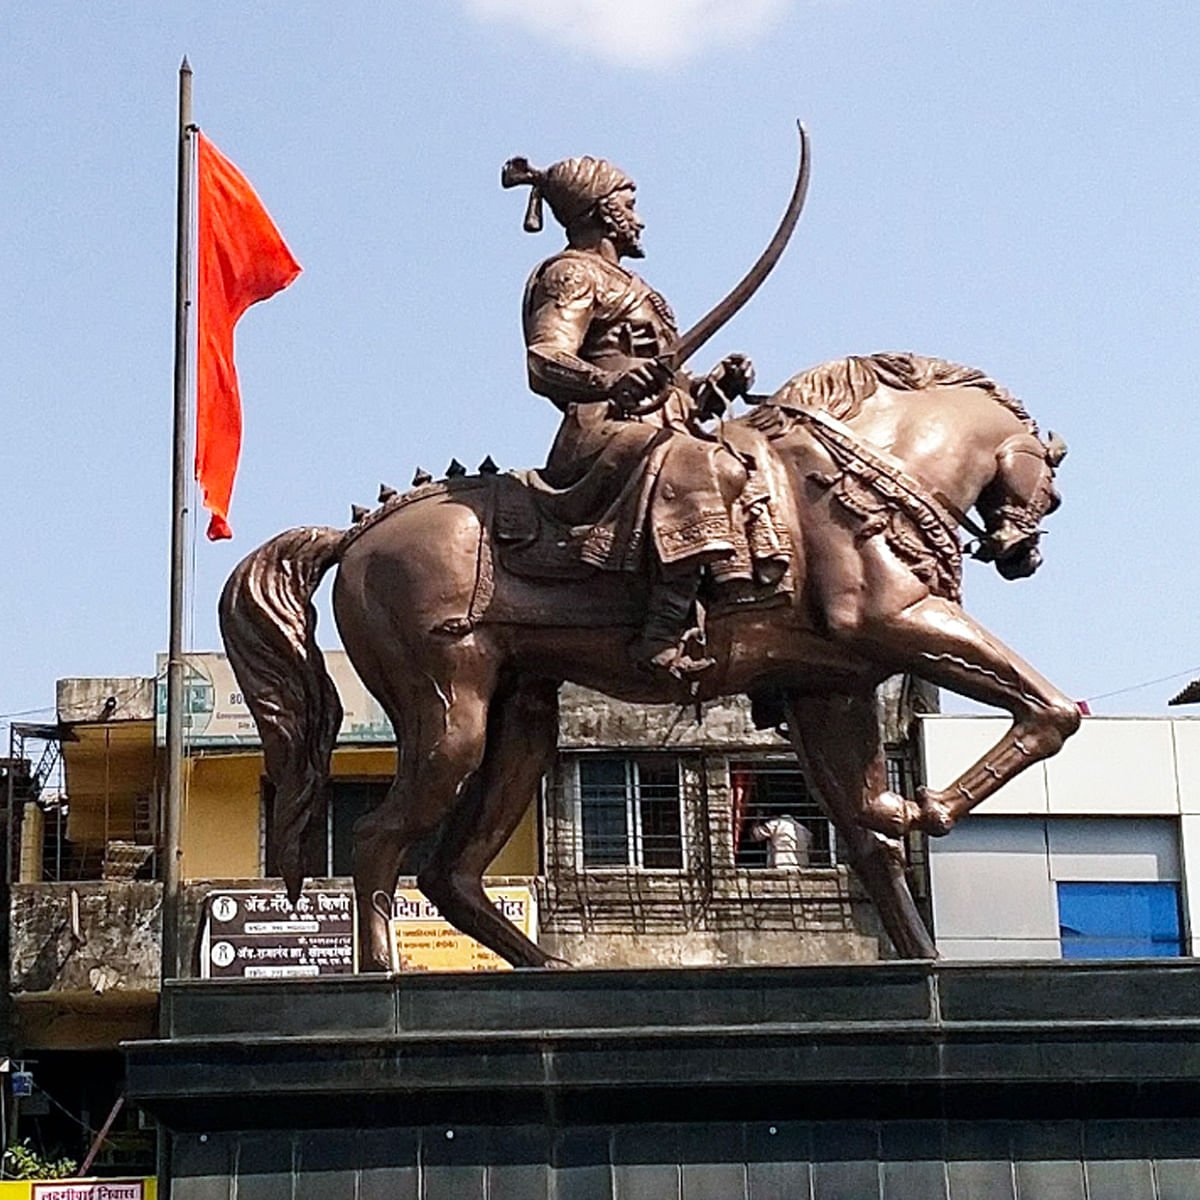 Mumbai: Shiv Sena opposes relocation of Chhatrapati Shivaji Maharaj's statue; demands raising its height by 25 feet